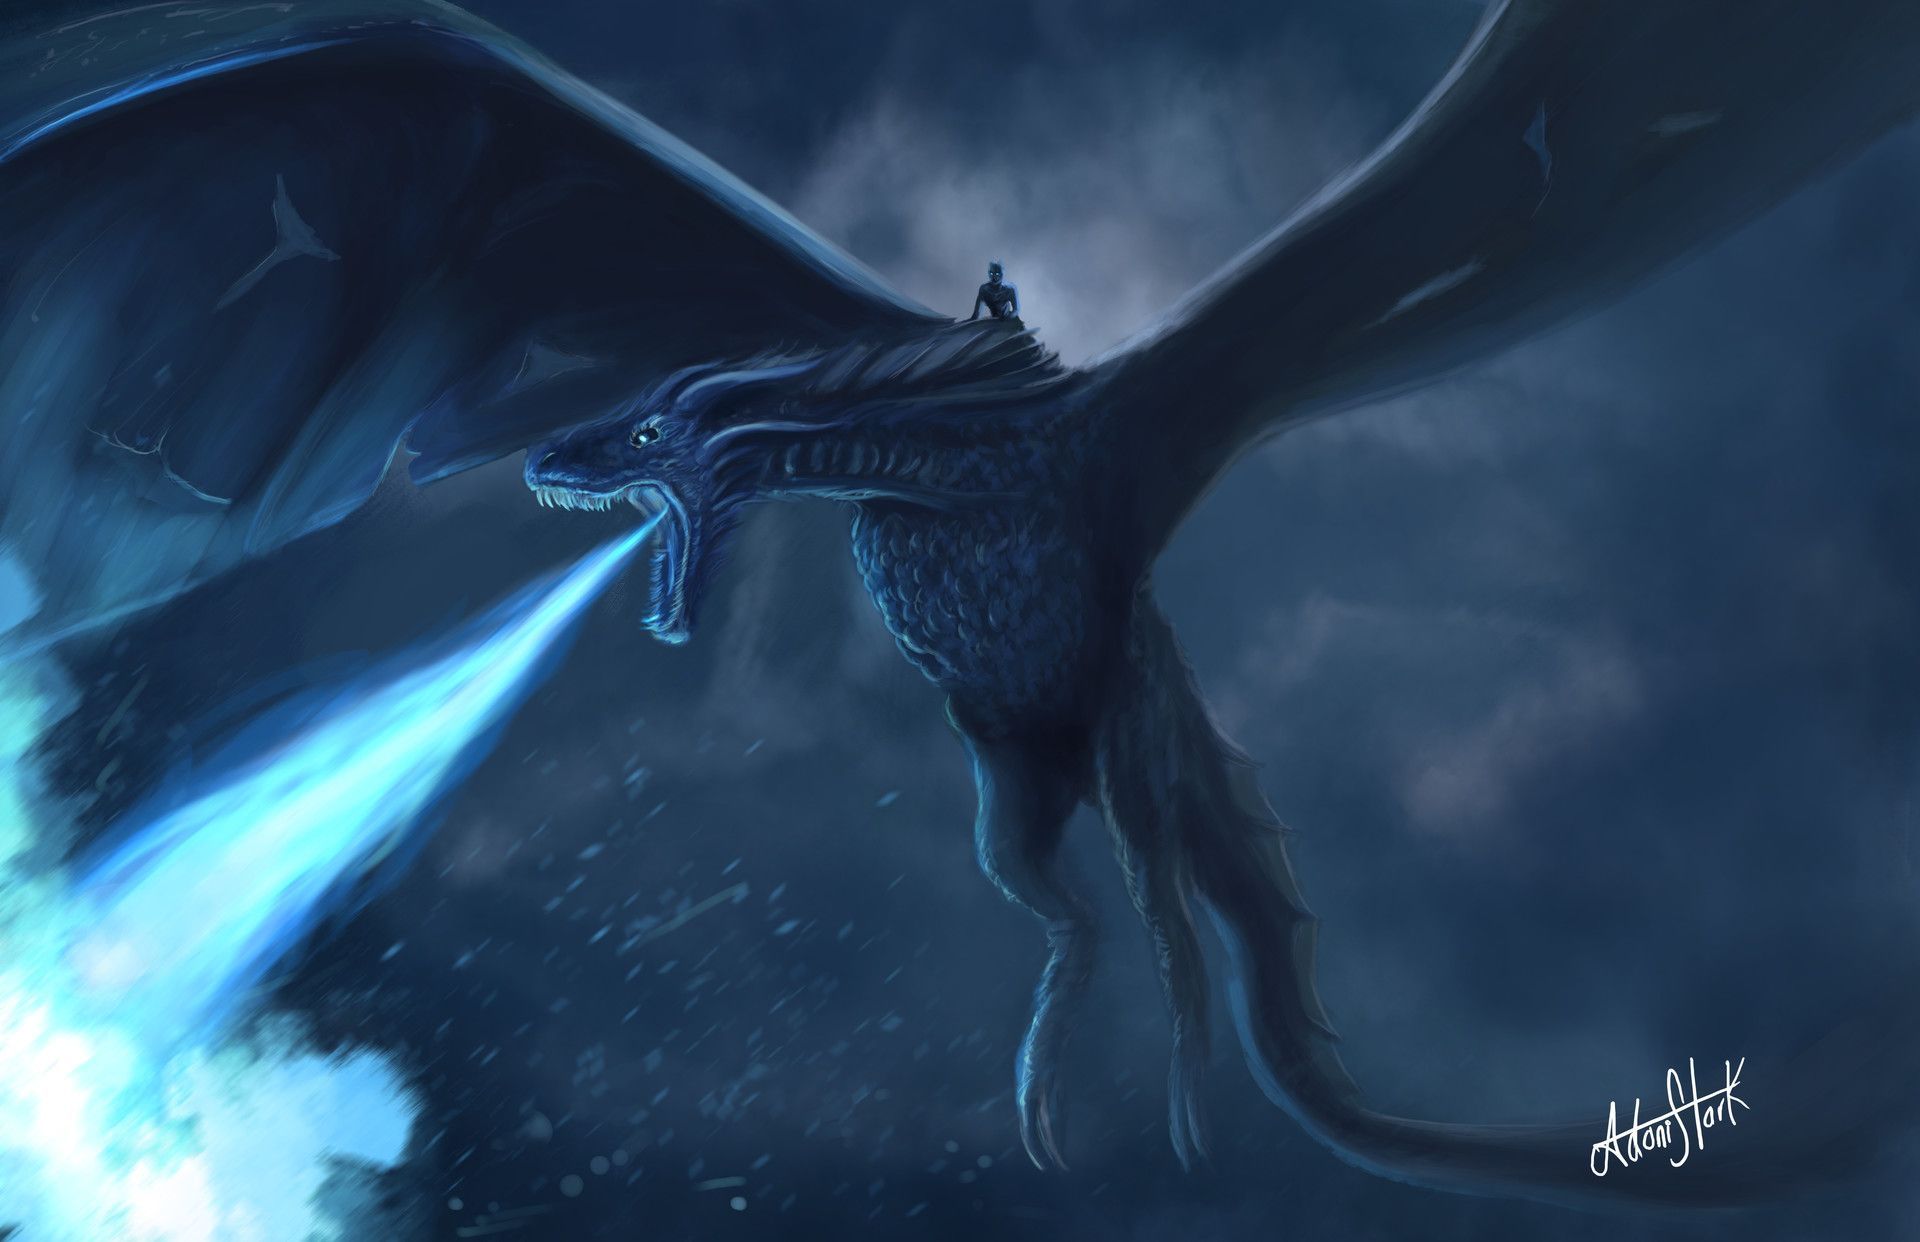 game of thrones wallpapers, drogon pics